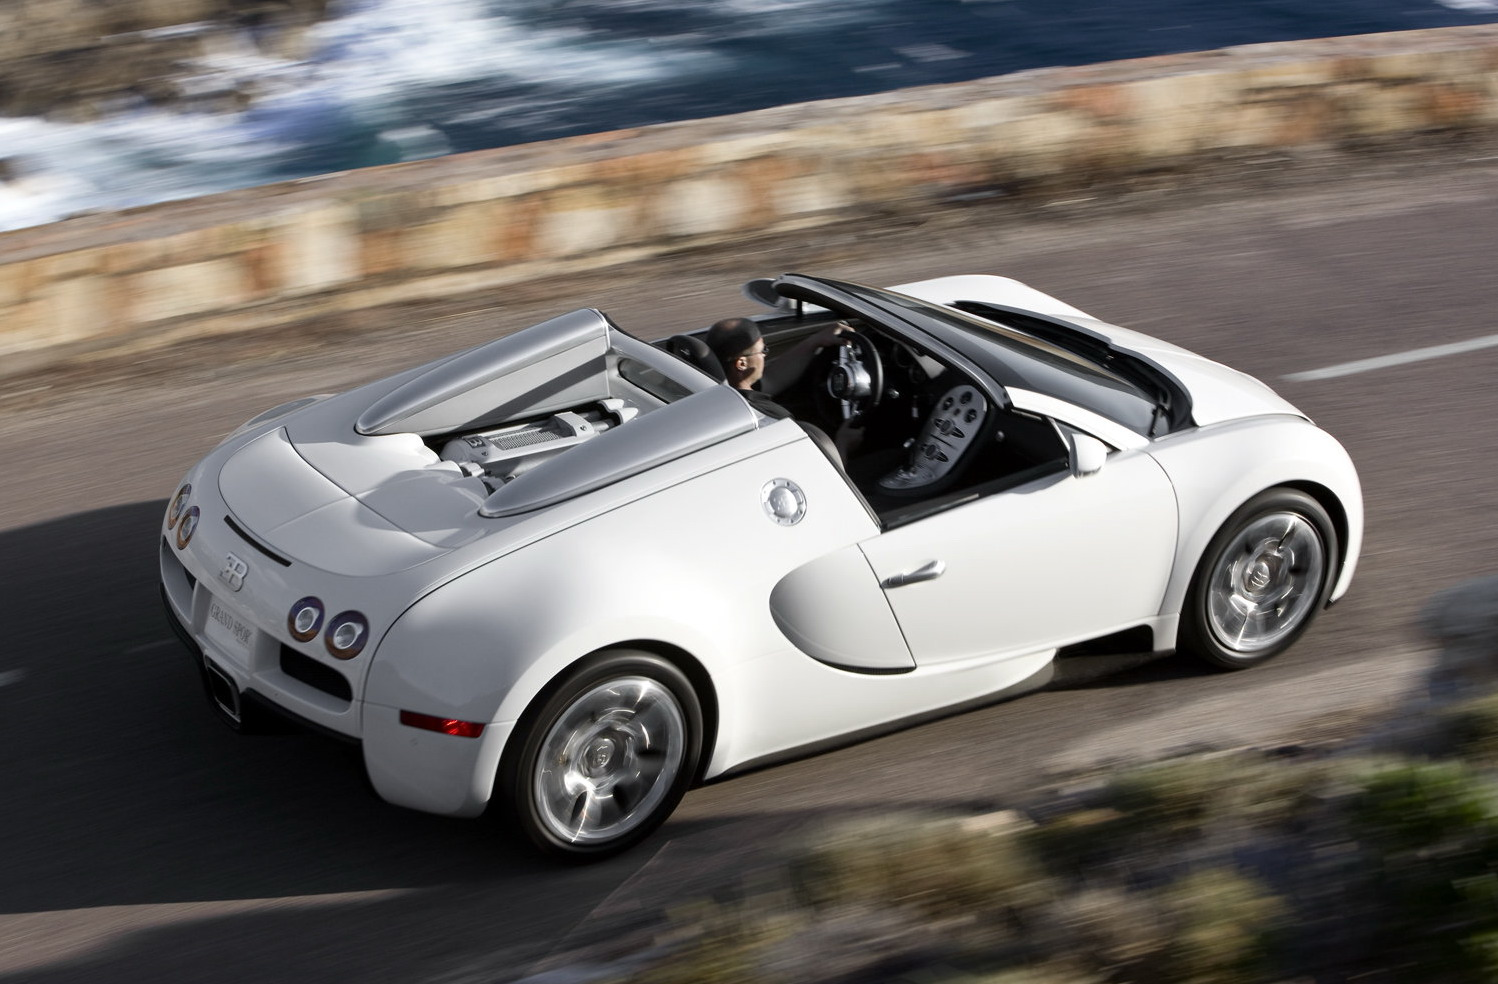 bugatti veyron 16 4 grand sport debut at pebble beach details and photo it s your auto world. Black Bedroom Furniture Sets. Home Design Ideas